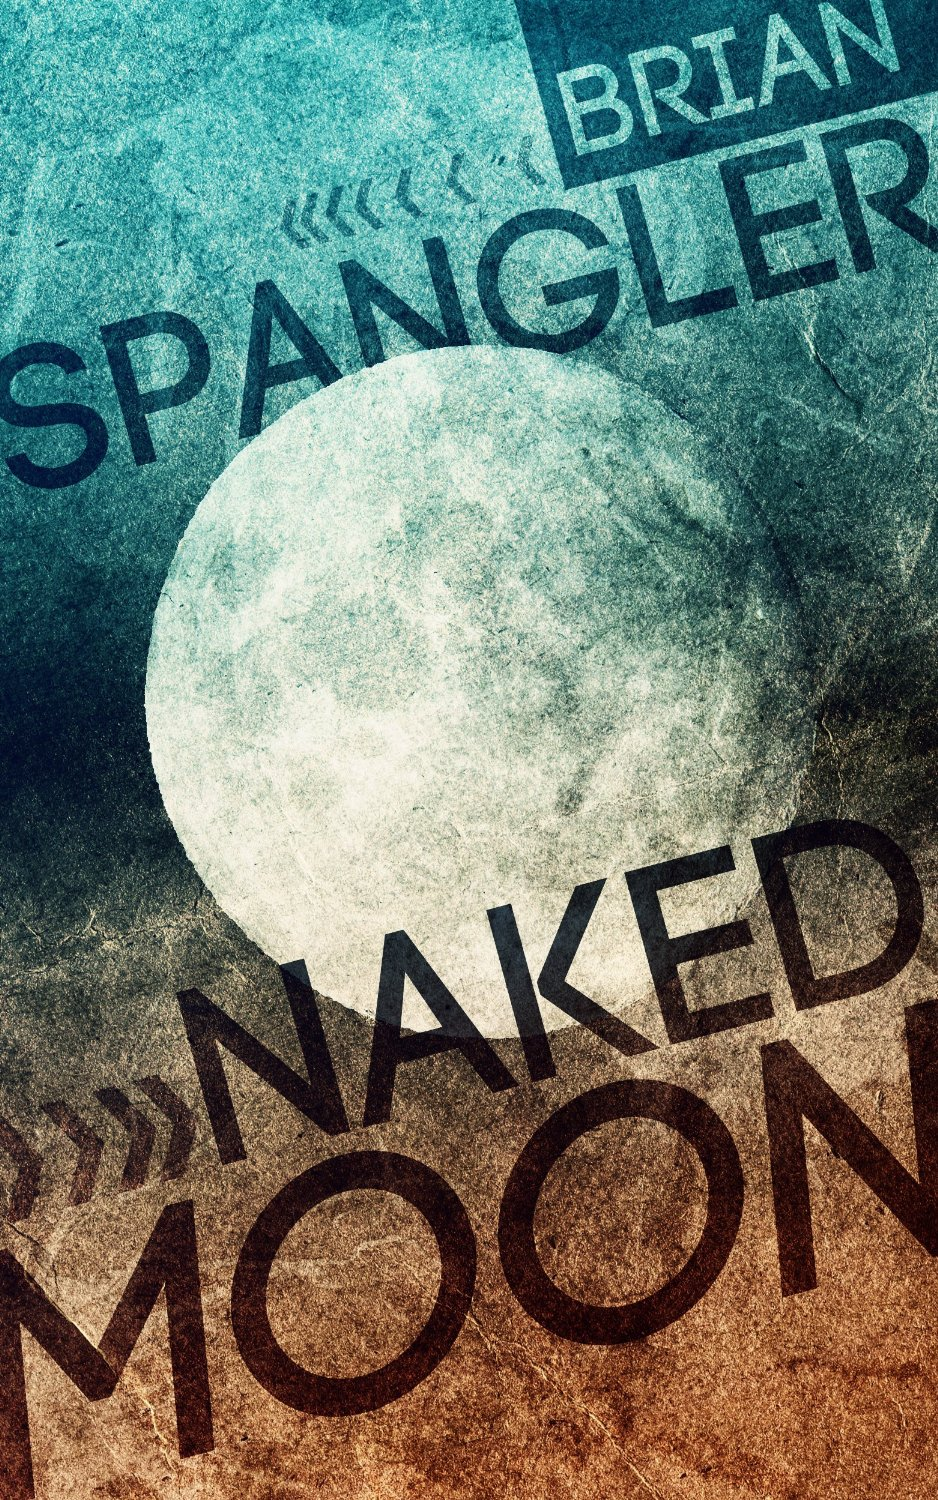 Speculative fiction showcase october 2014 naked moon by brian spangler fandeluxe Images